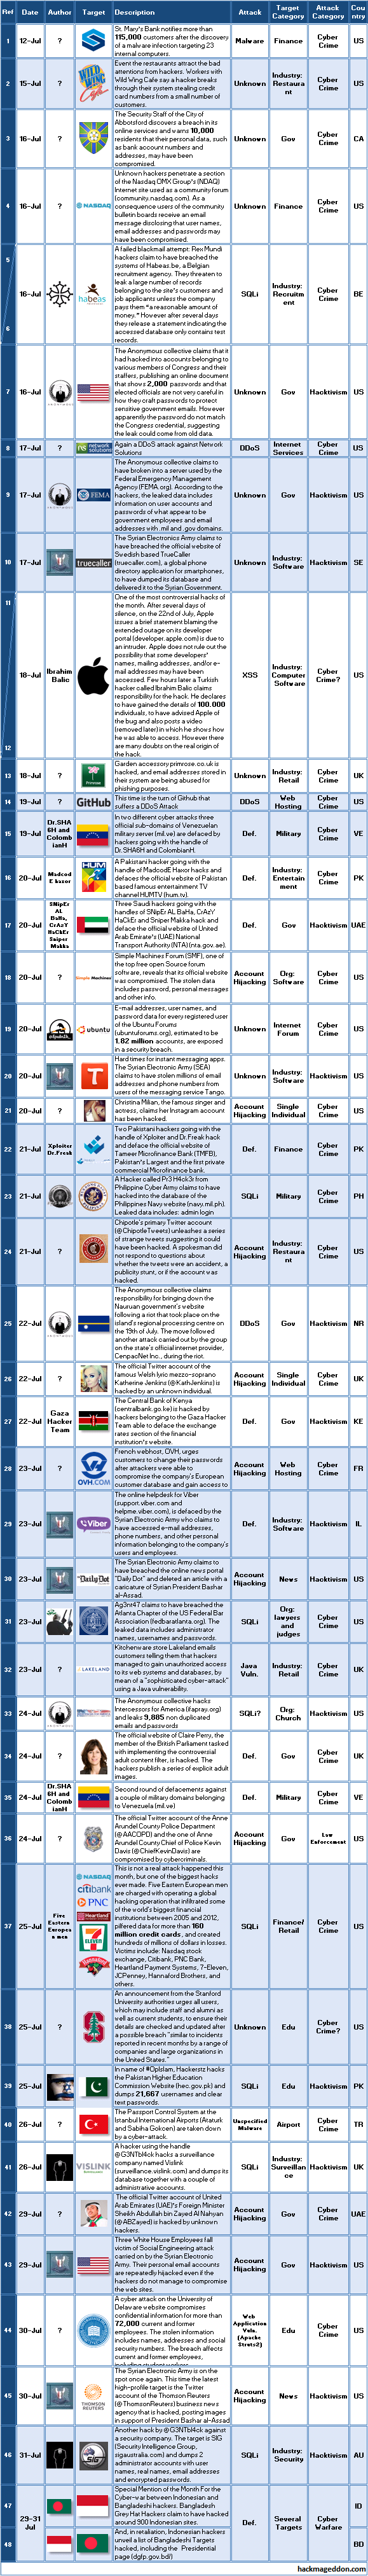 16-31-july-2013-cyber-attacks-timeline